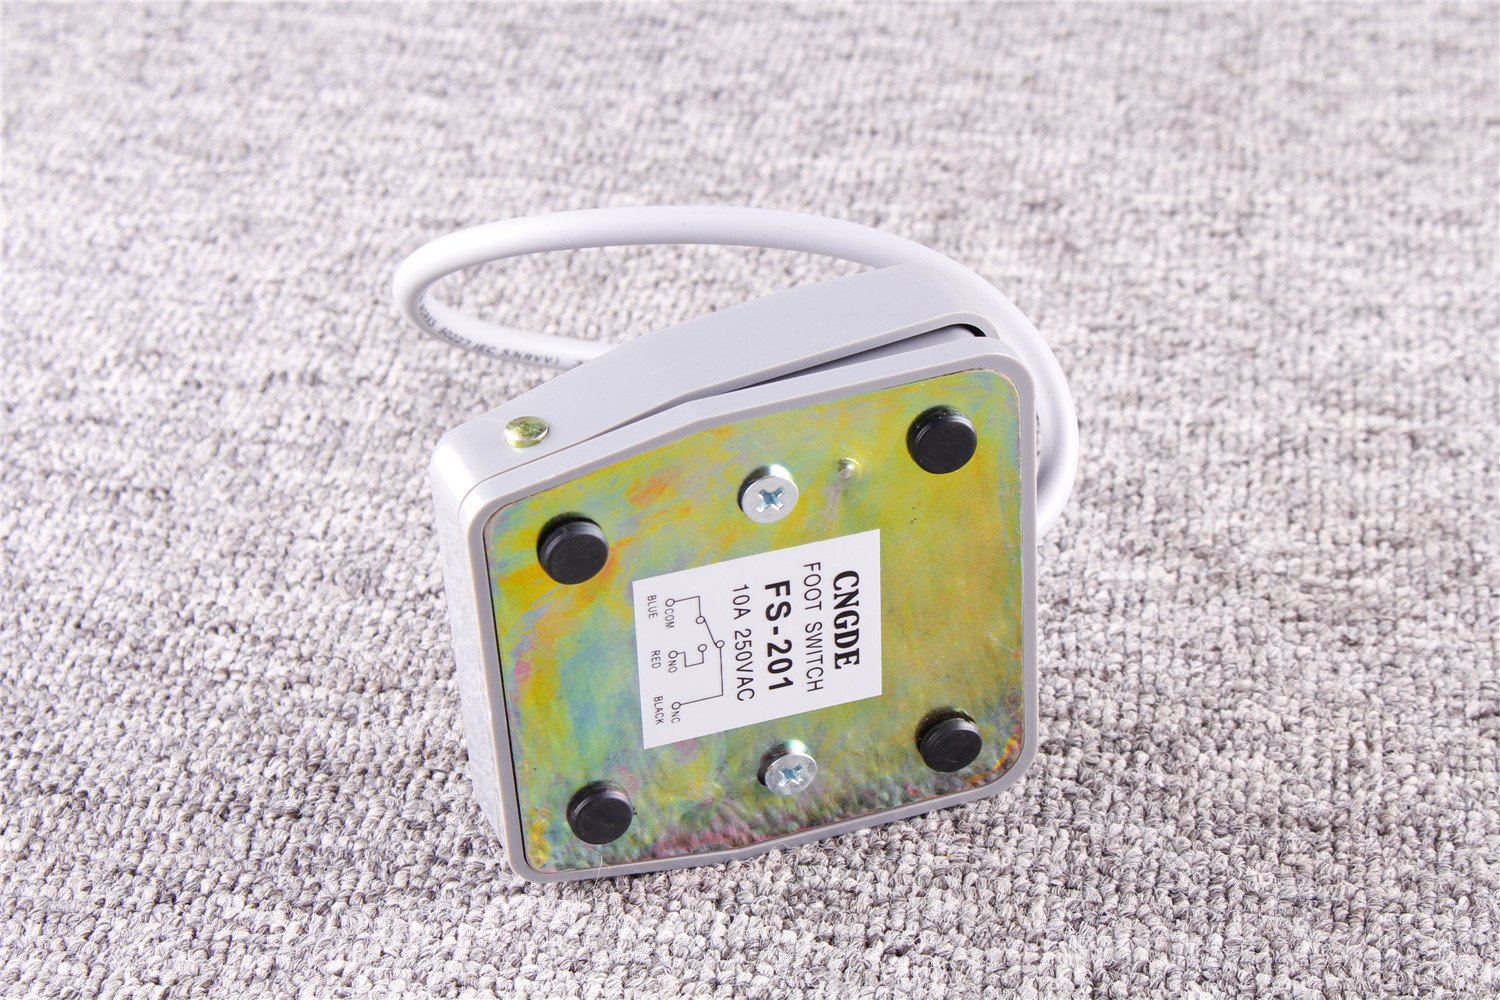 1x TFS-402 Foot Pedal Switch CNC Momentary Contact Type AC Stomp Foot Switch 250V 15A US Shipping